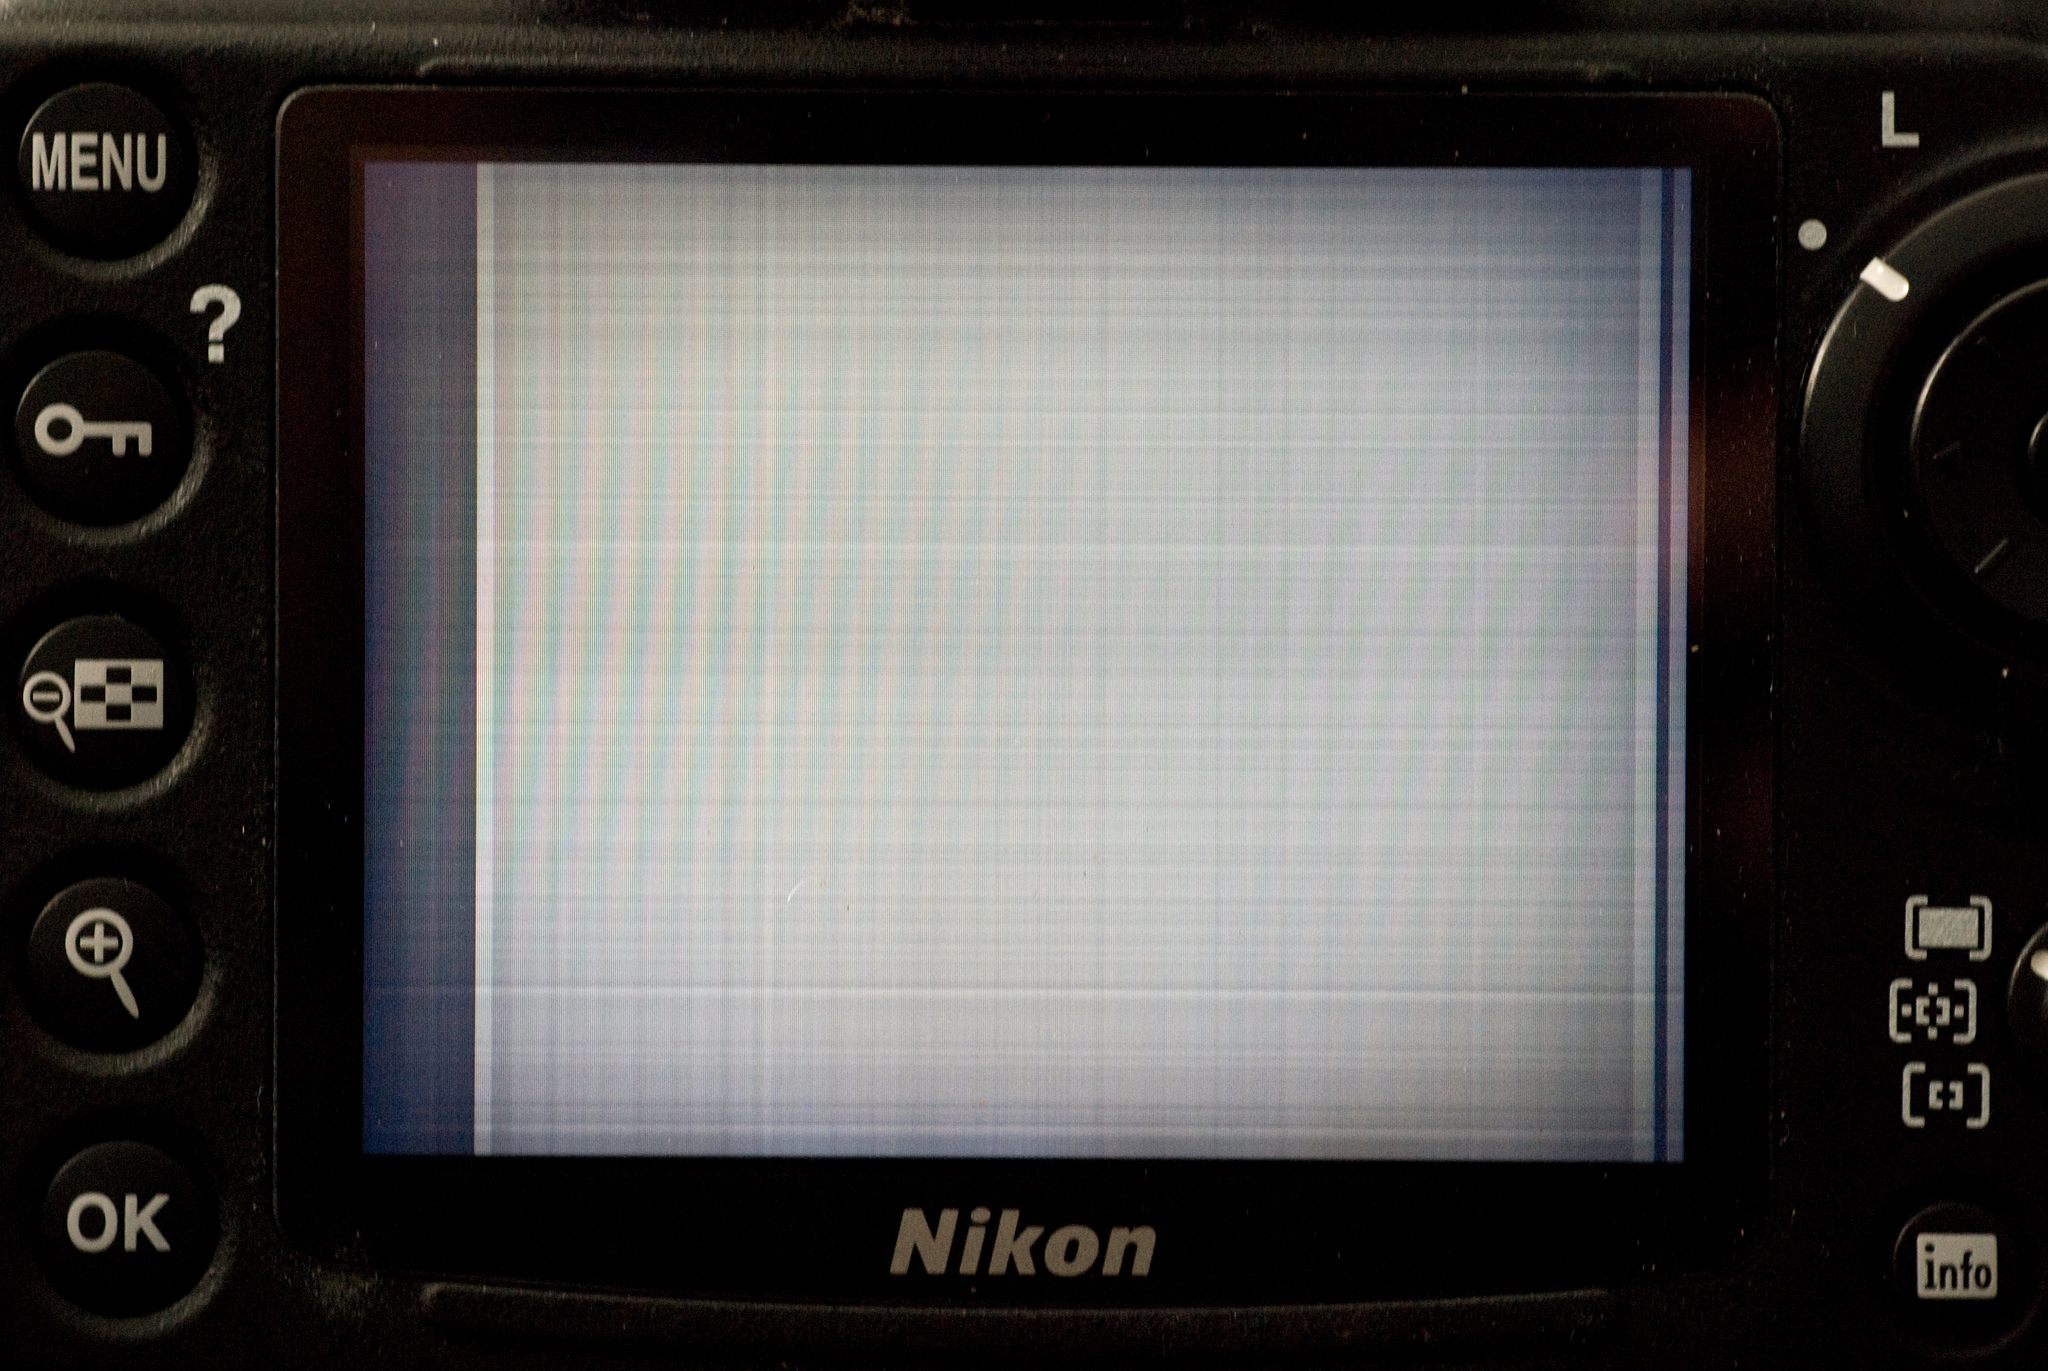 Problem With Rear Lcd Nikon D700 Flickr Old Circuit Board Photo Sharing